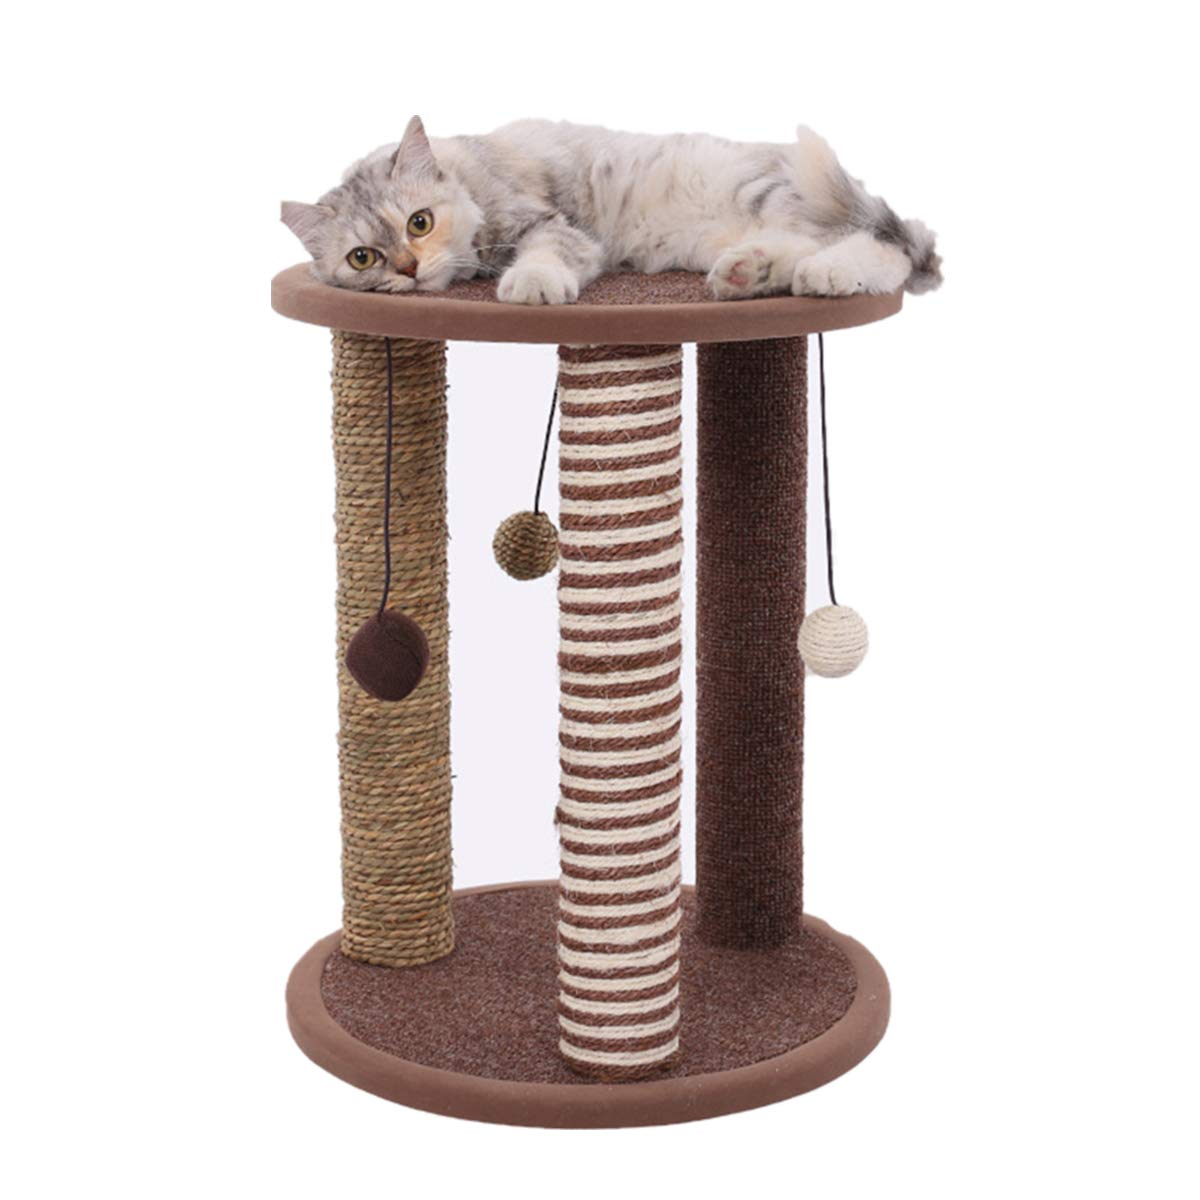 Cat Activity Tree Sisal Cat Scratching Post Seagrass Cat Furniture 20 '' Tripod Interactive Cat Toy with Hanging Balls for Kittens Pets by Cheerhunting